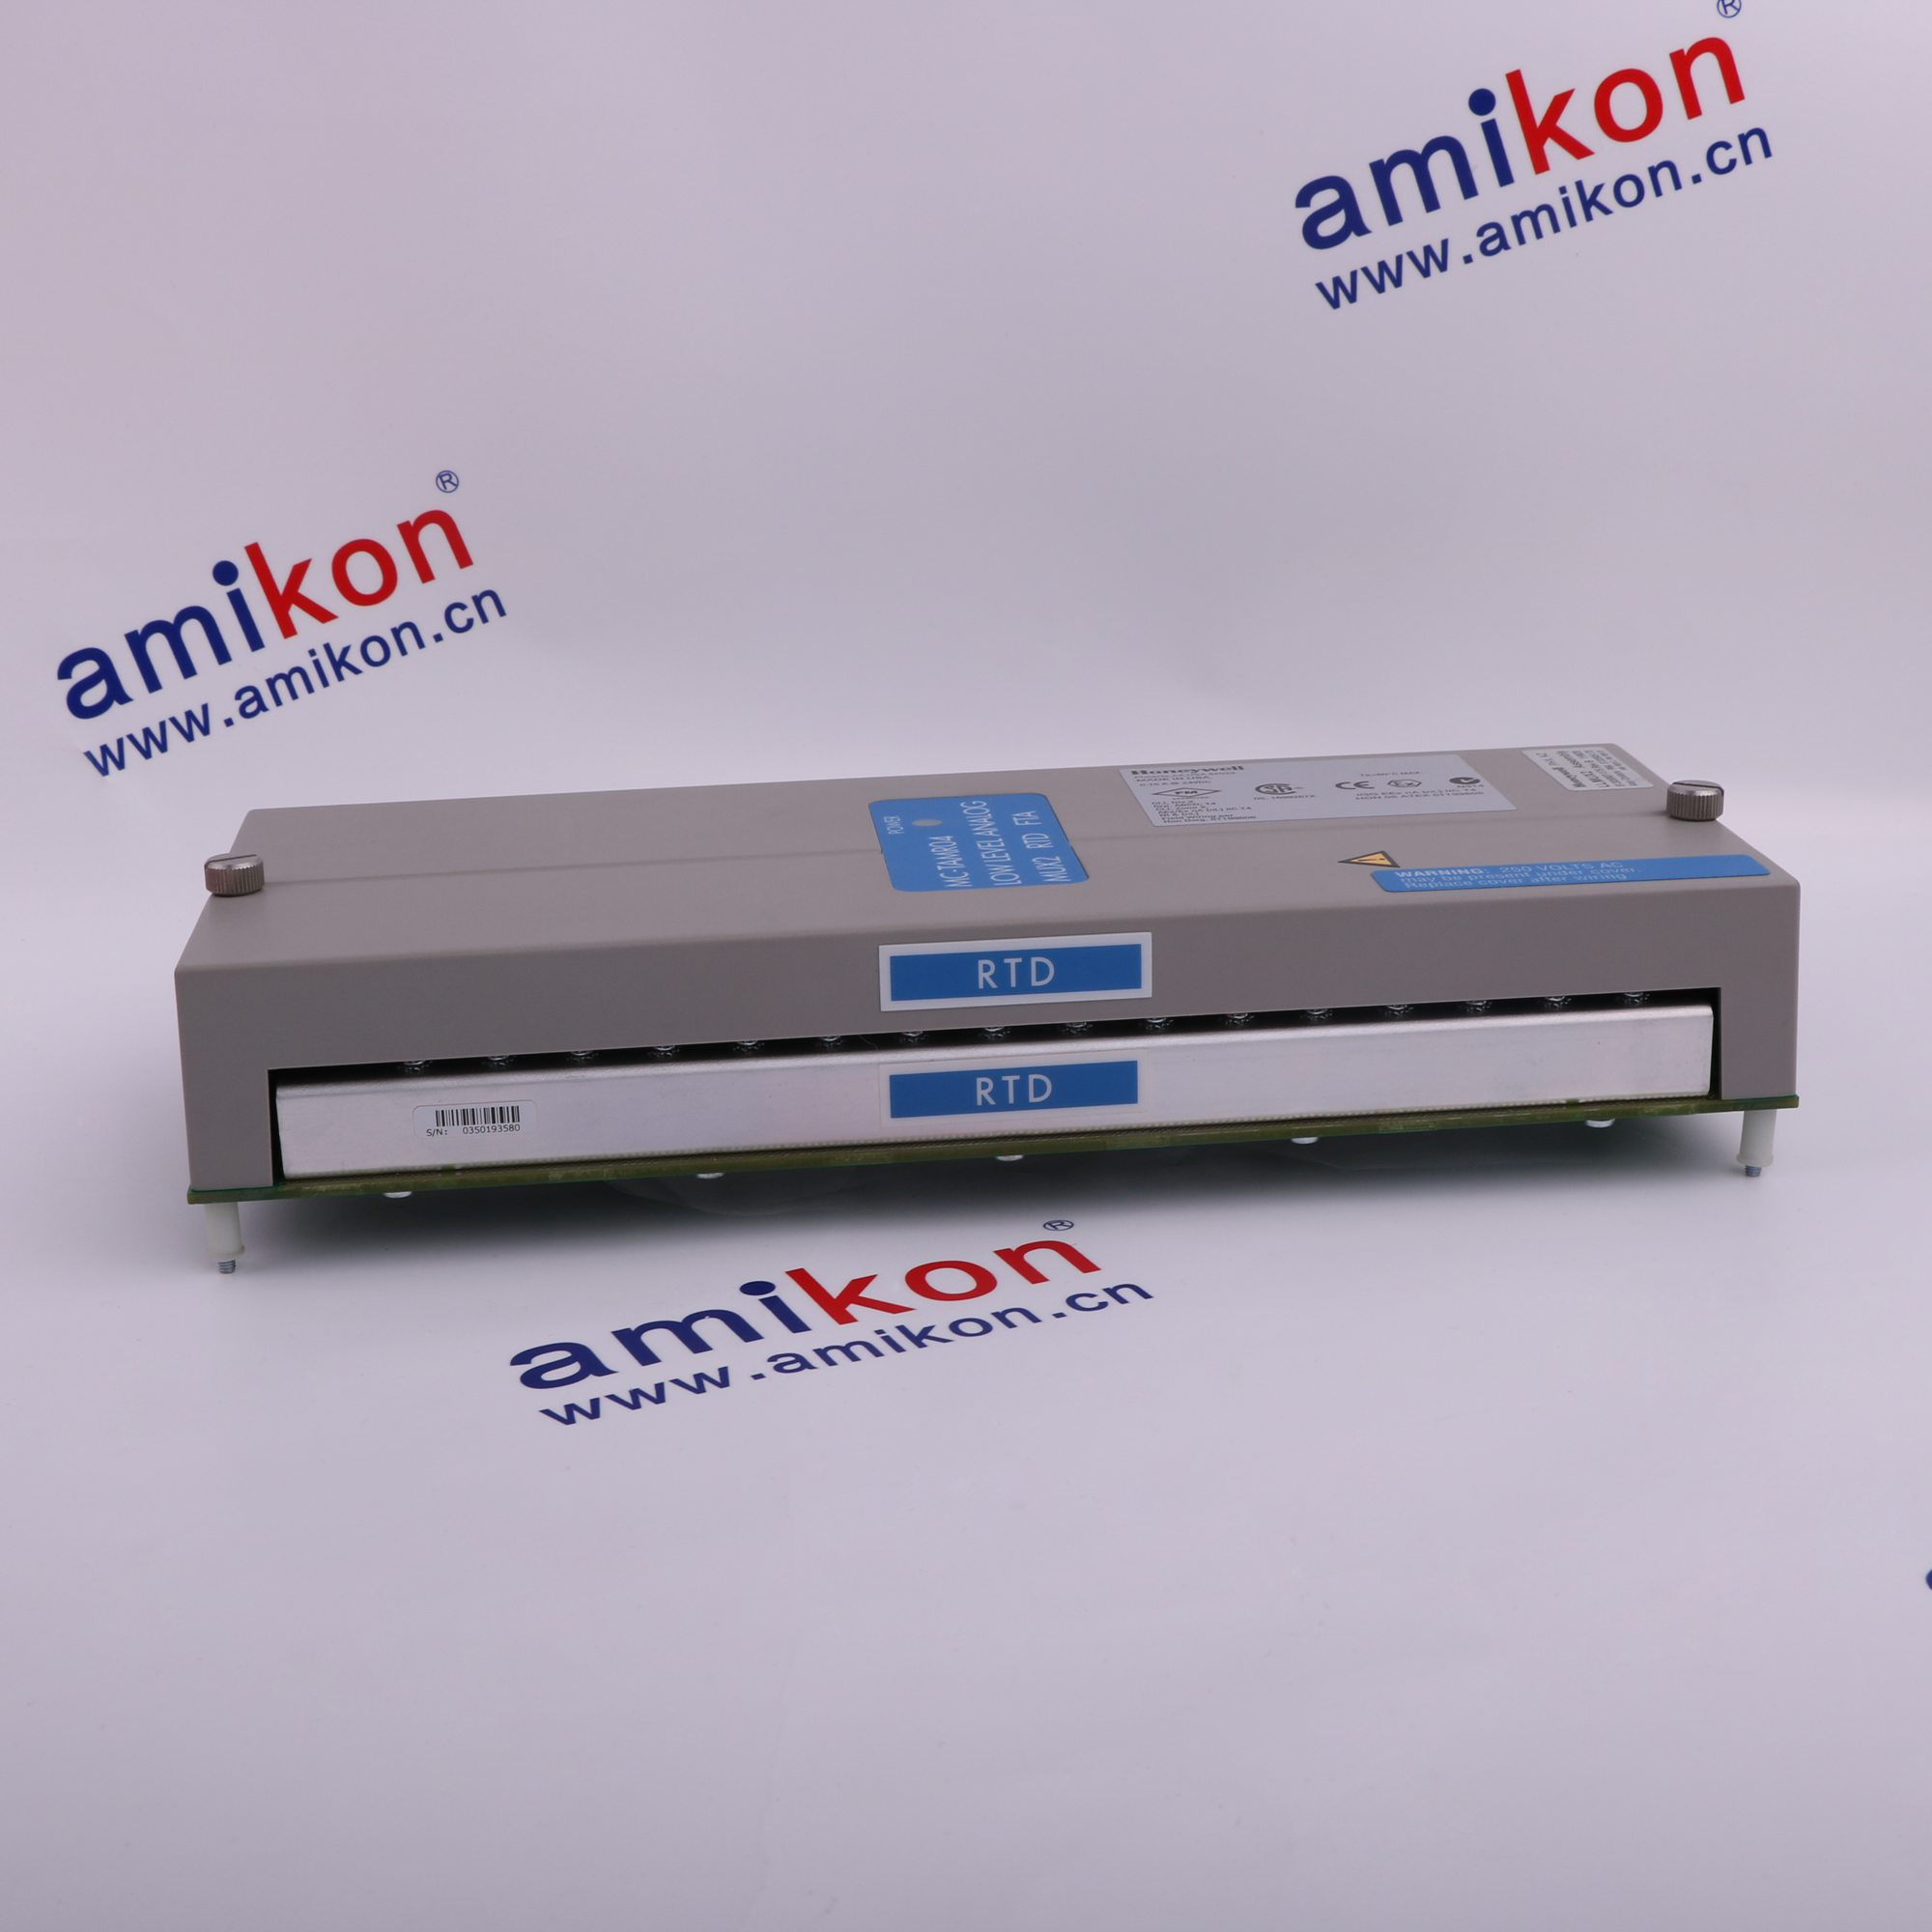 HONEYWELL	900C32-0244-00  mail to :  sales3@amikon.cn